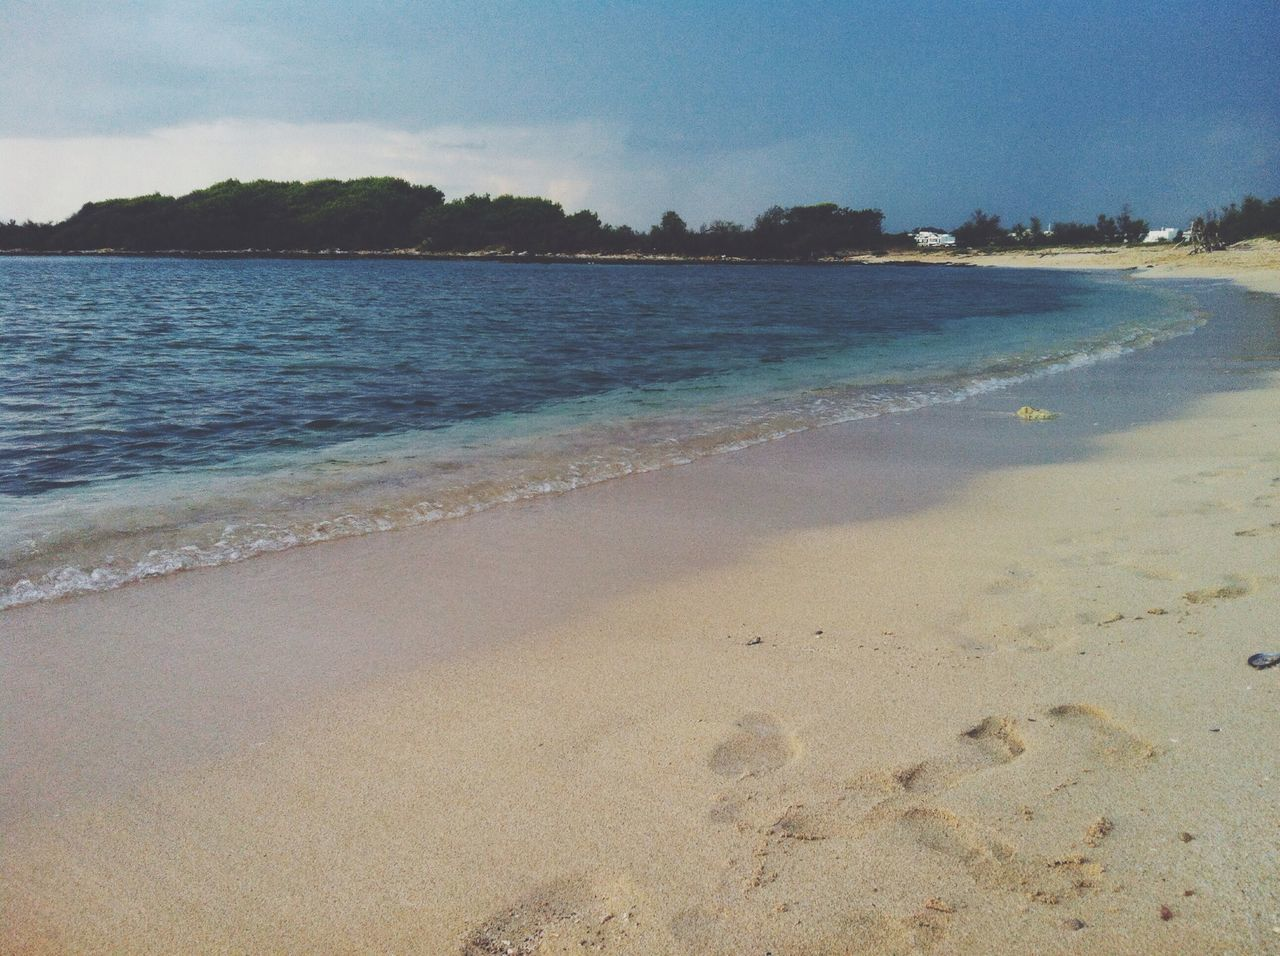 beach, sea, nature, sand, no people, water, tranquility, holiday, sky, scenics, outdoors, beauty in nature, day